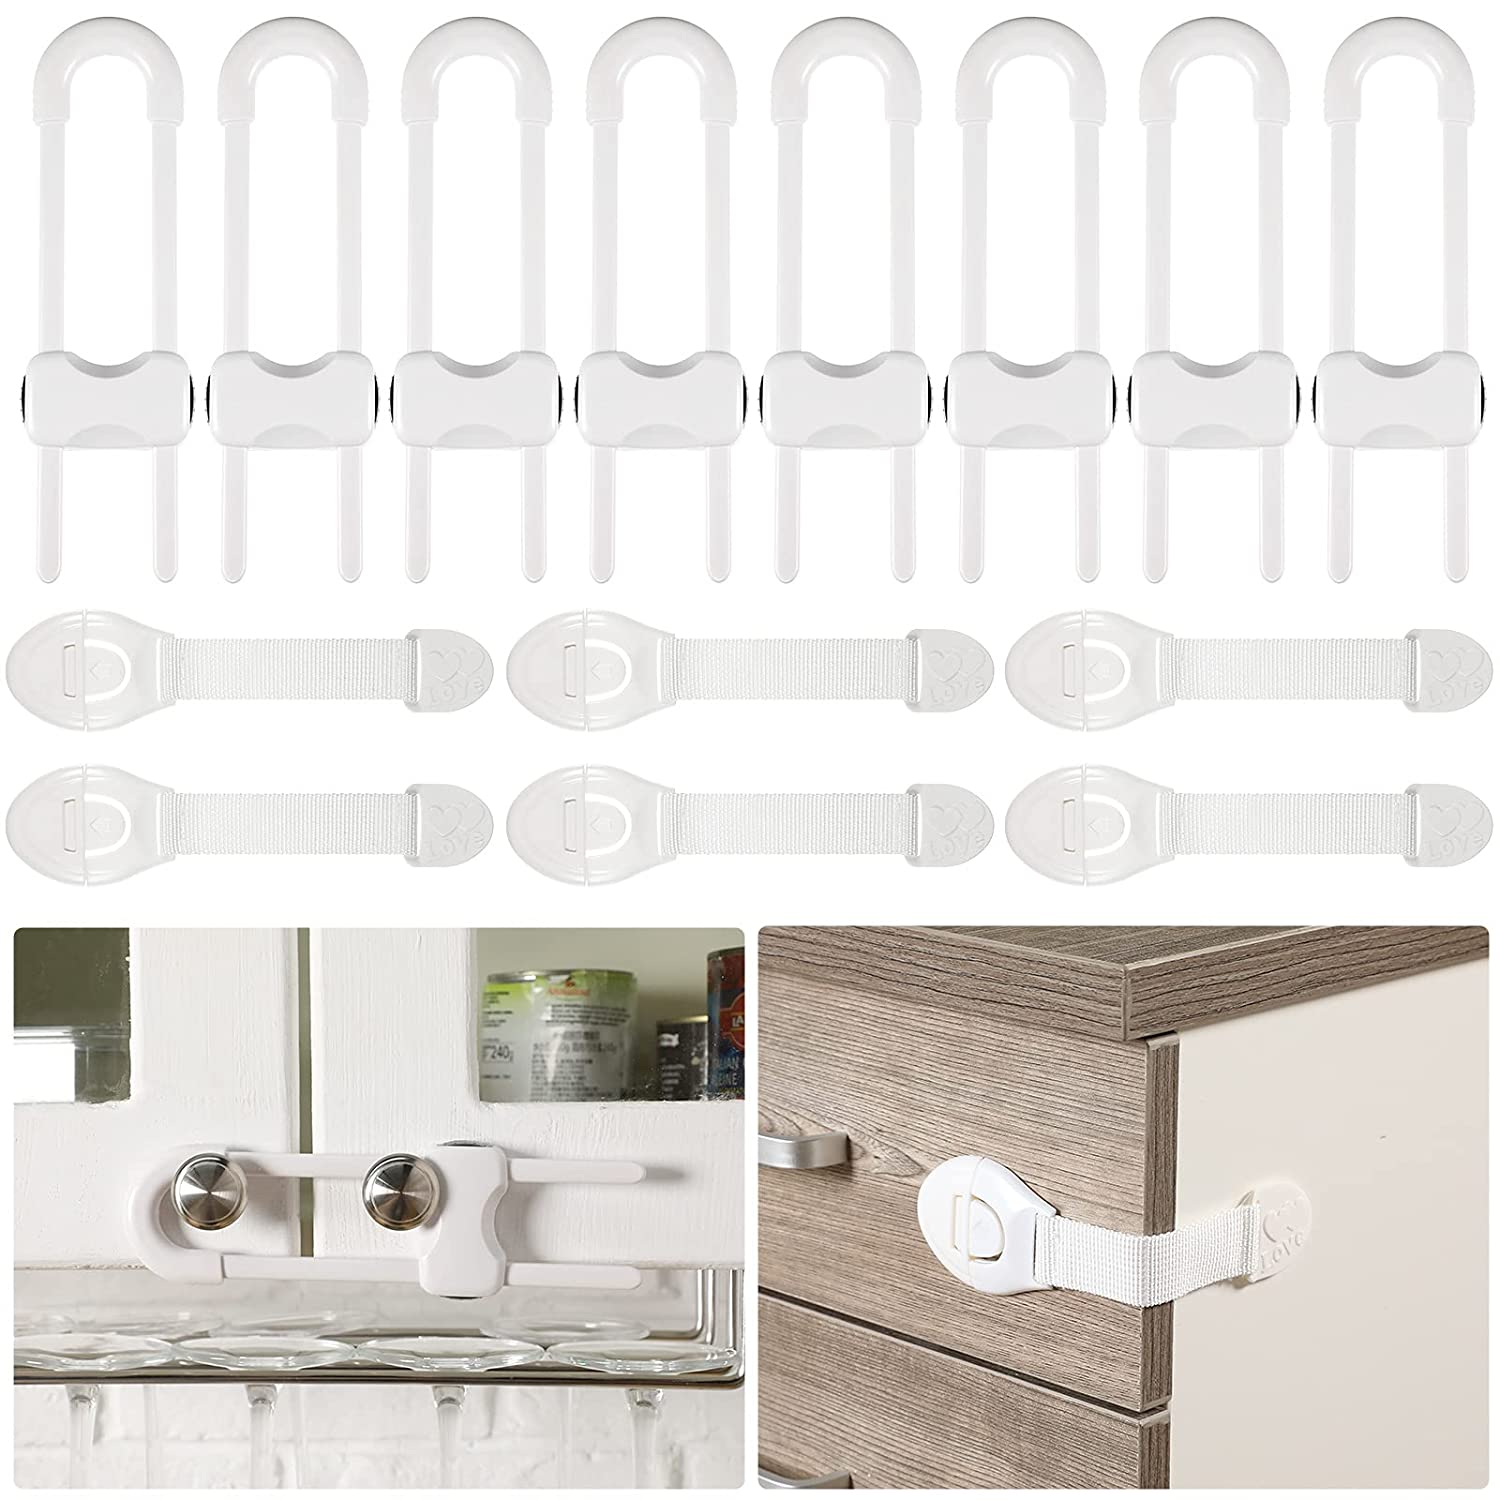 14 Pieces Baby Proofing Cabinet Locks Set U-Shaped Child Safety Sliding Cabinet Locks Kids Safety Strap Lock Easy to Use Child Proof Locks for Cabinets Drawers Refrigerators Dishwashers Handles